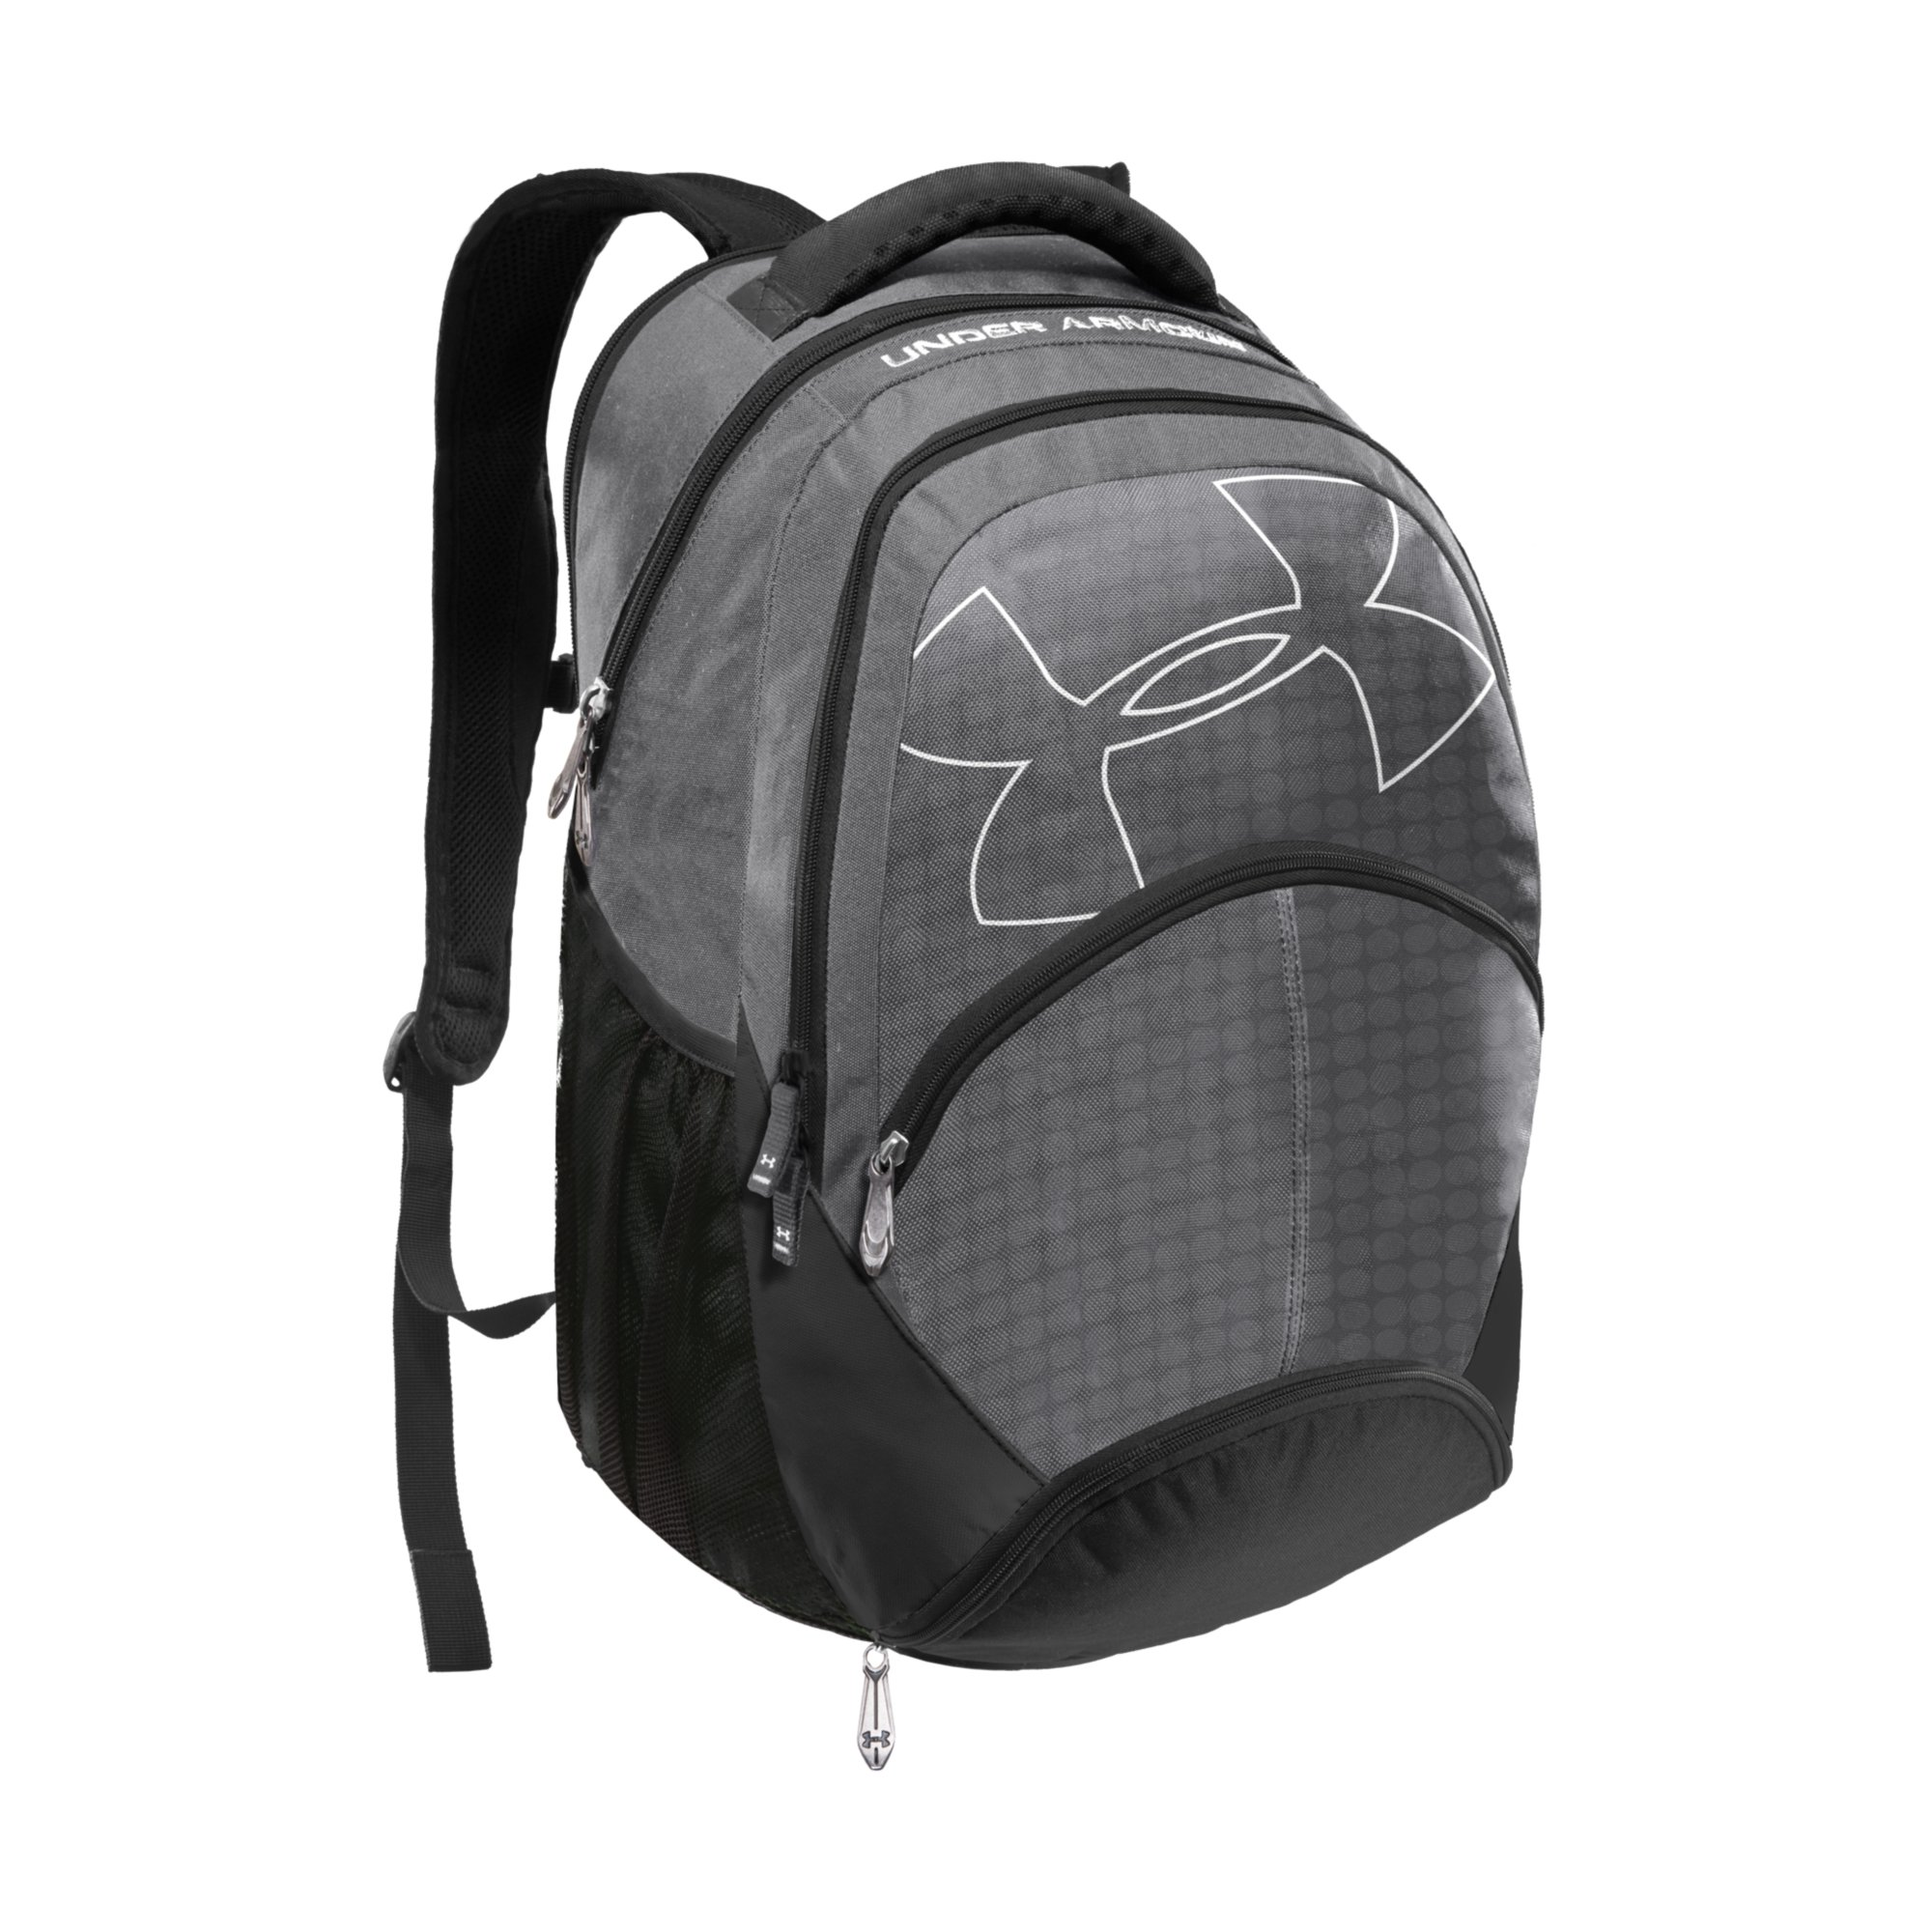 mesh backpacks for school under armour. Black Bedroom Furniture Sets. Home Design Ideas